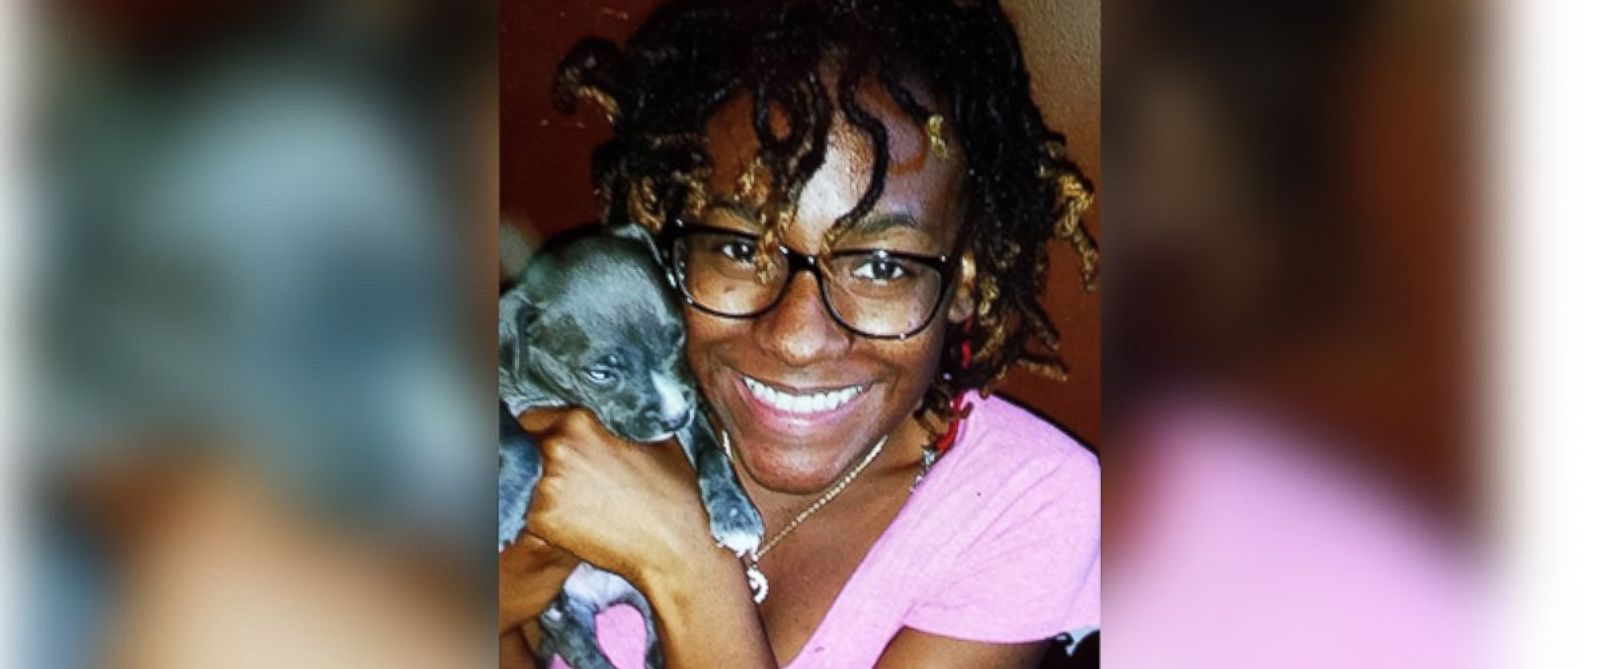 PHOTO: Philadelphia police are searching for Carlesha Freeland-Gaither, who was abducted while walking on a Philadelphia street on Nov. 2, 2014.